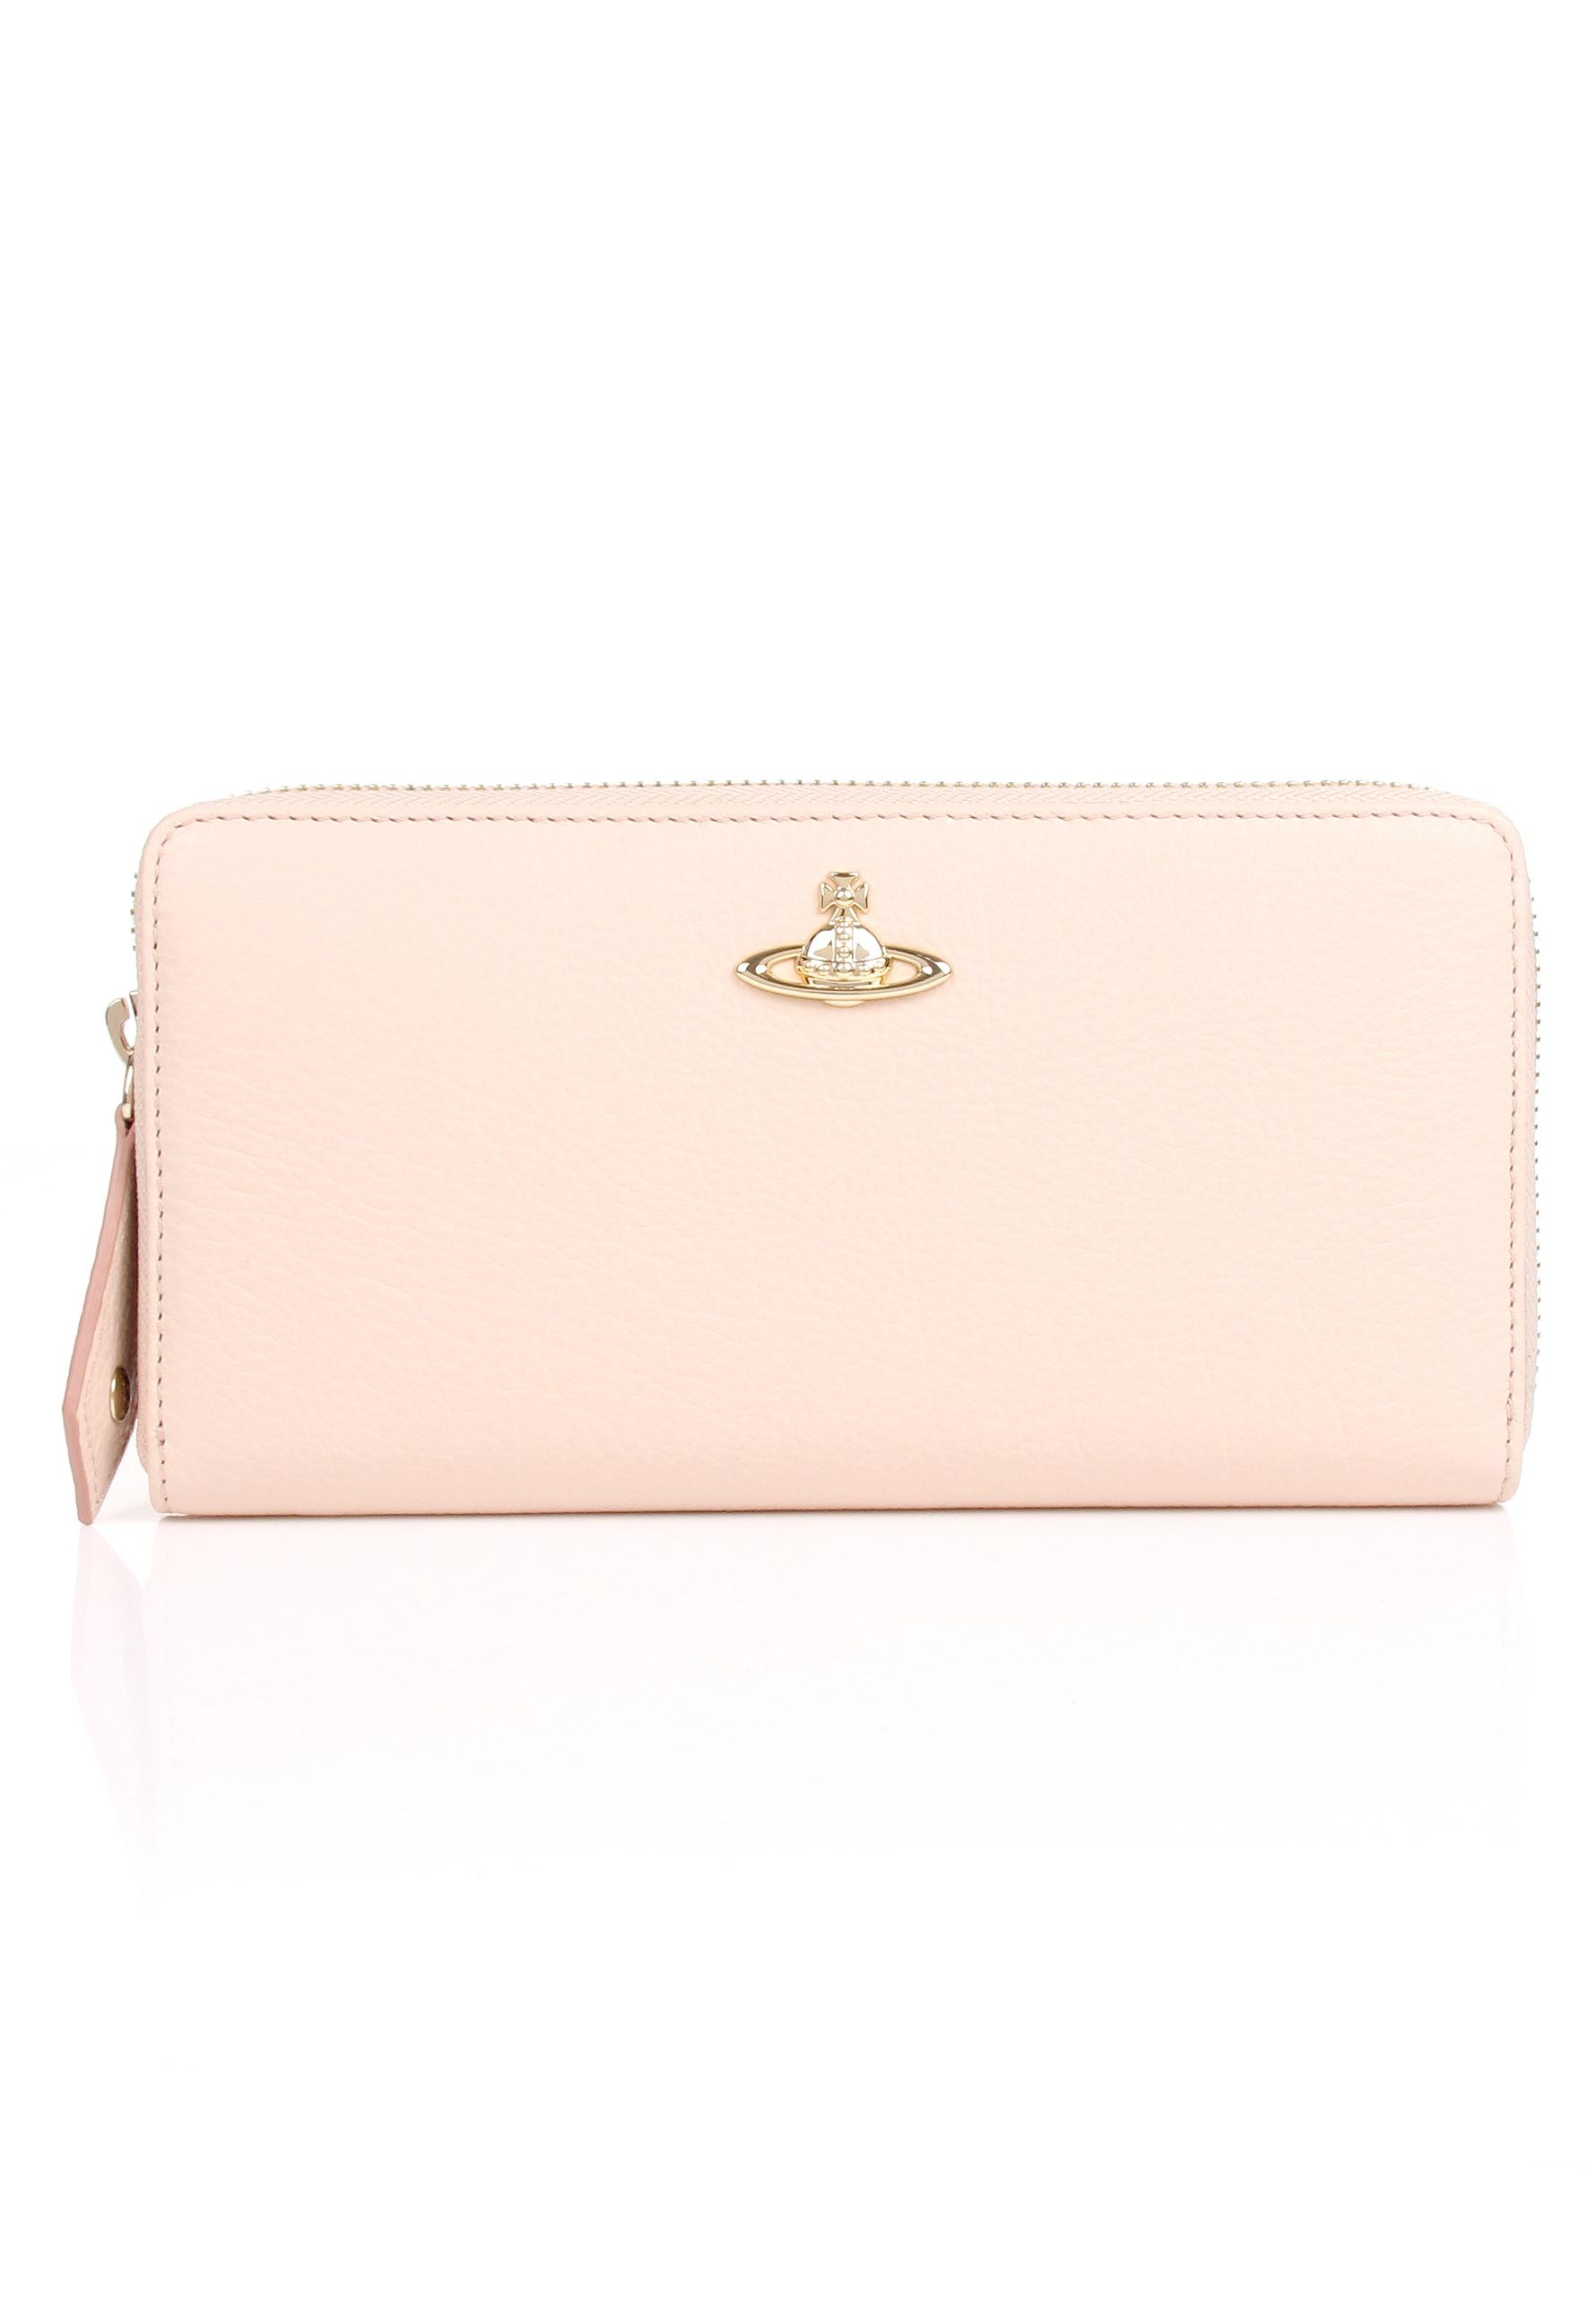 295da9ae0e8 Vivienne Westwood Balm 321385 Zip Around Purse Pink Cream In